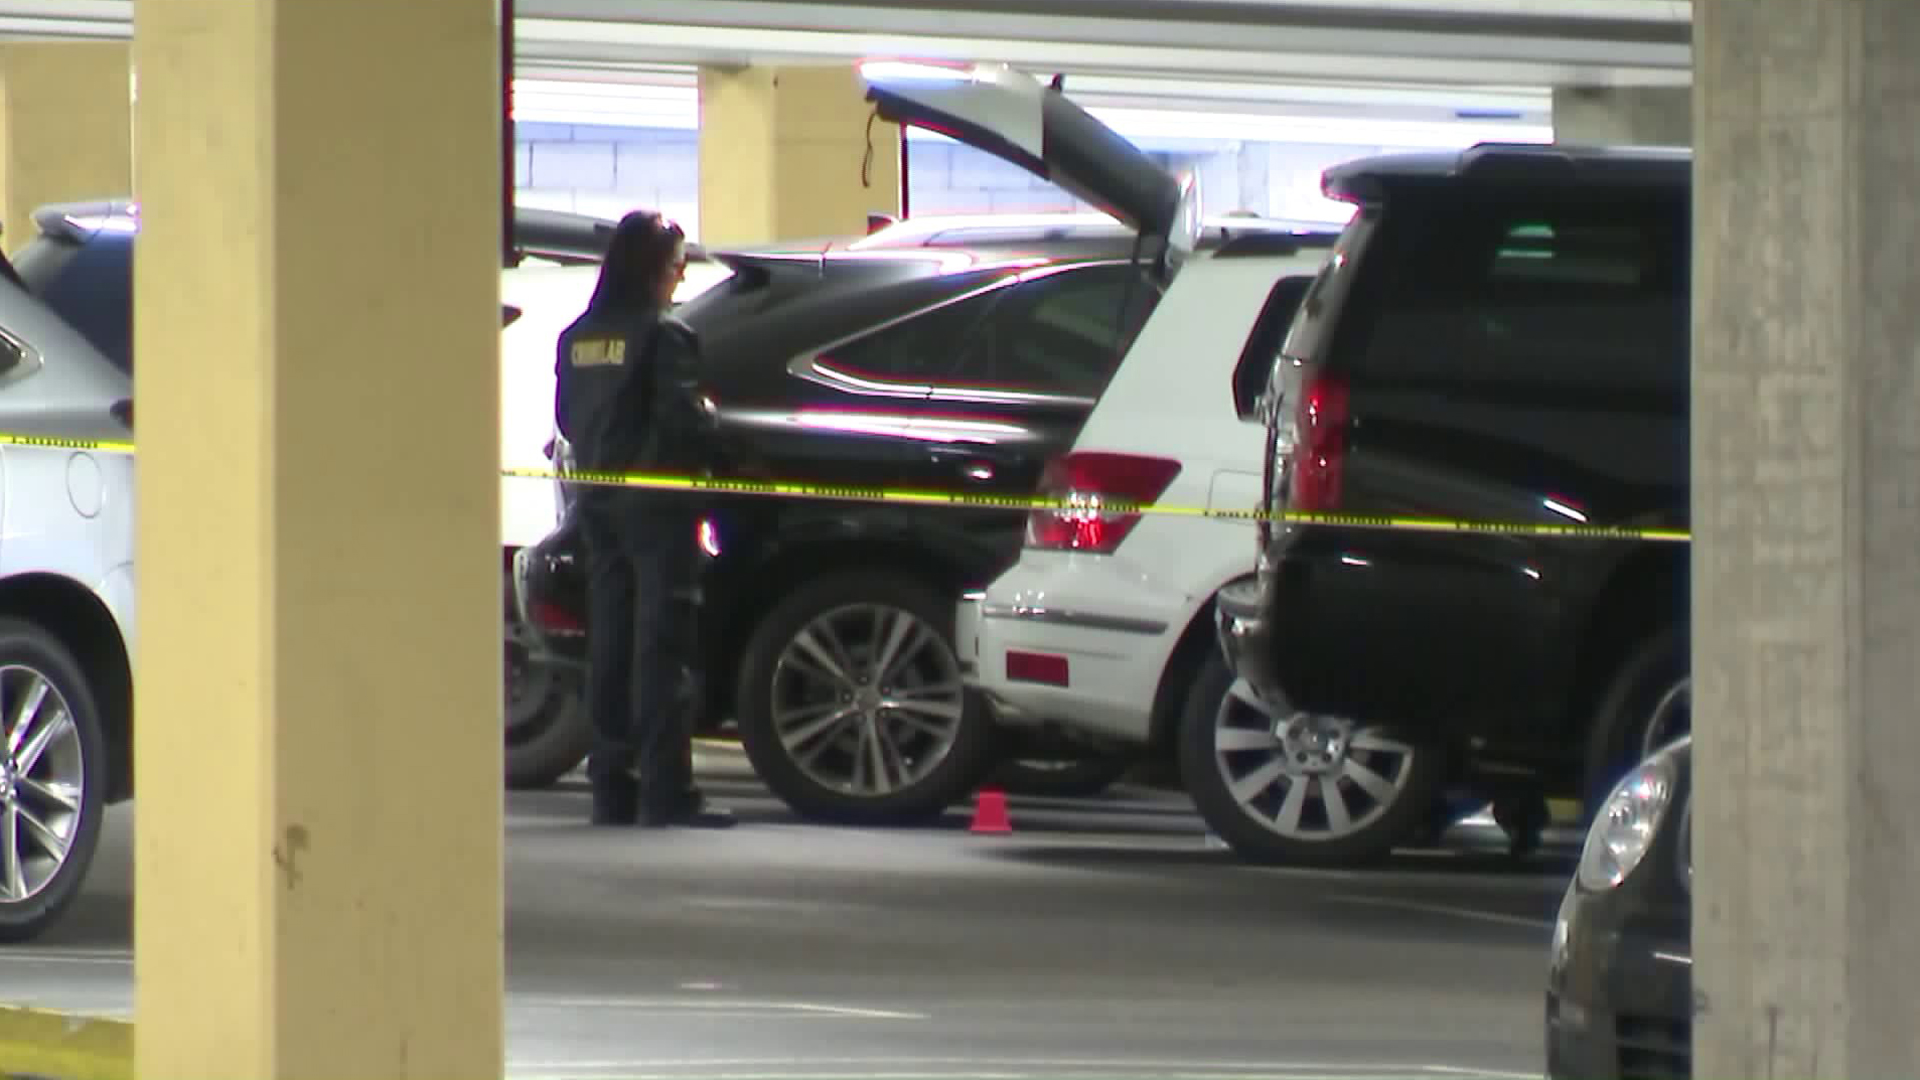 Investigators search for evidence in a Mercedes-Benz GLK parked in a Rolling Hills Estates mall garage after a woman was found stabbed to death inside the SUV on May 3, 2018. (Credit: KTLA)